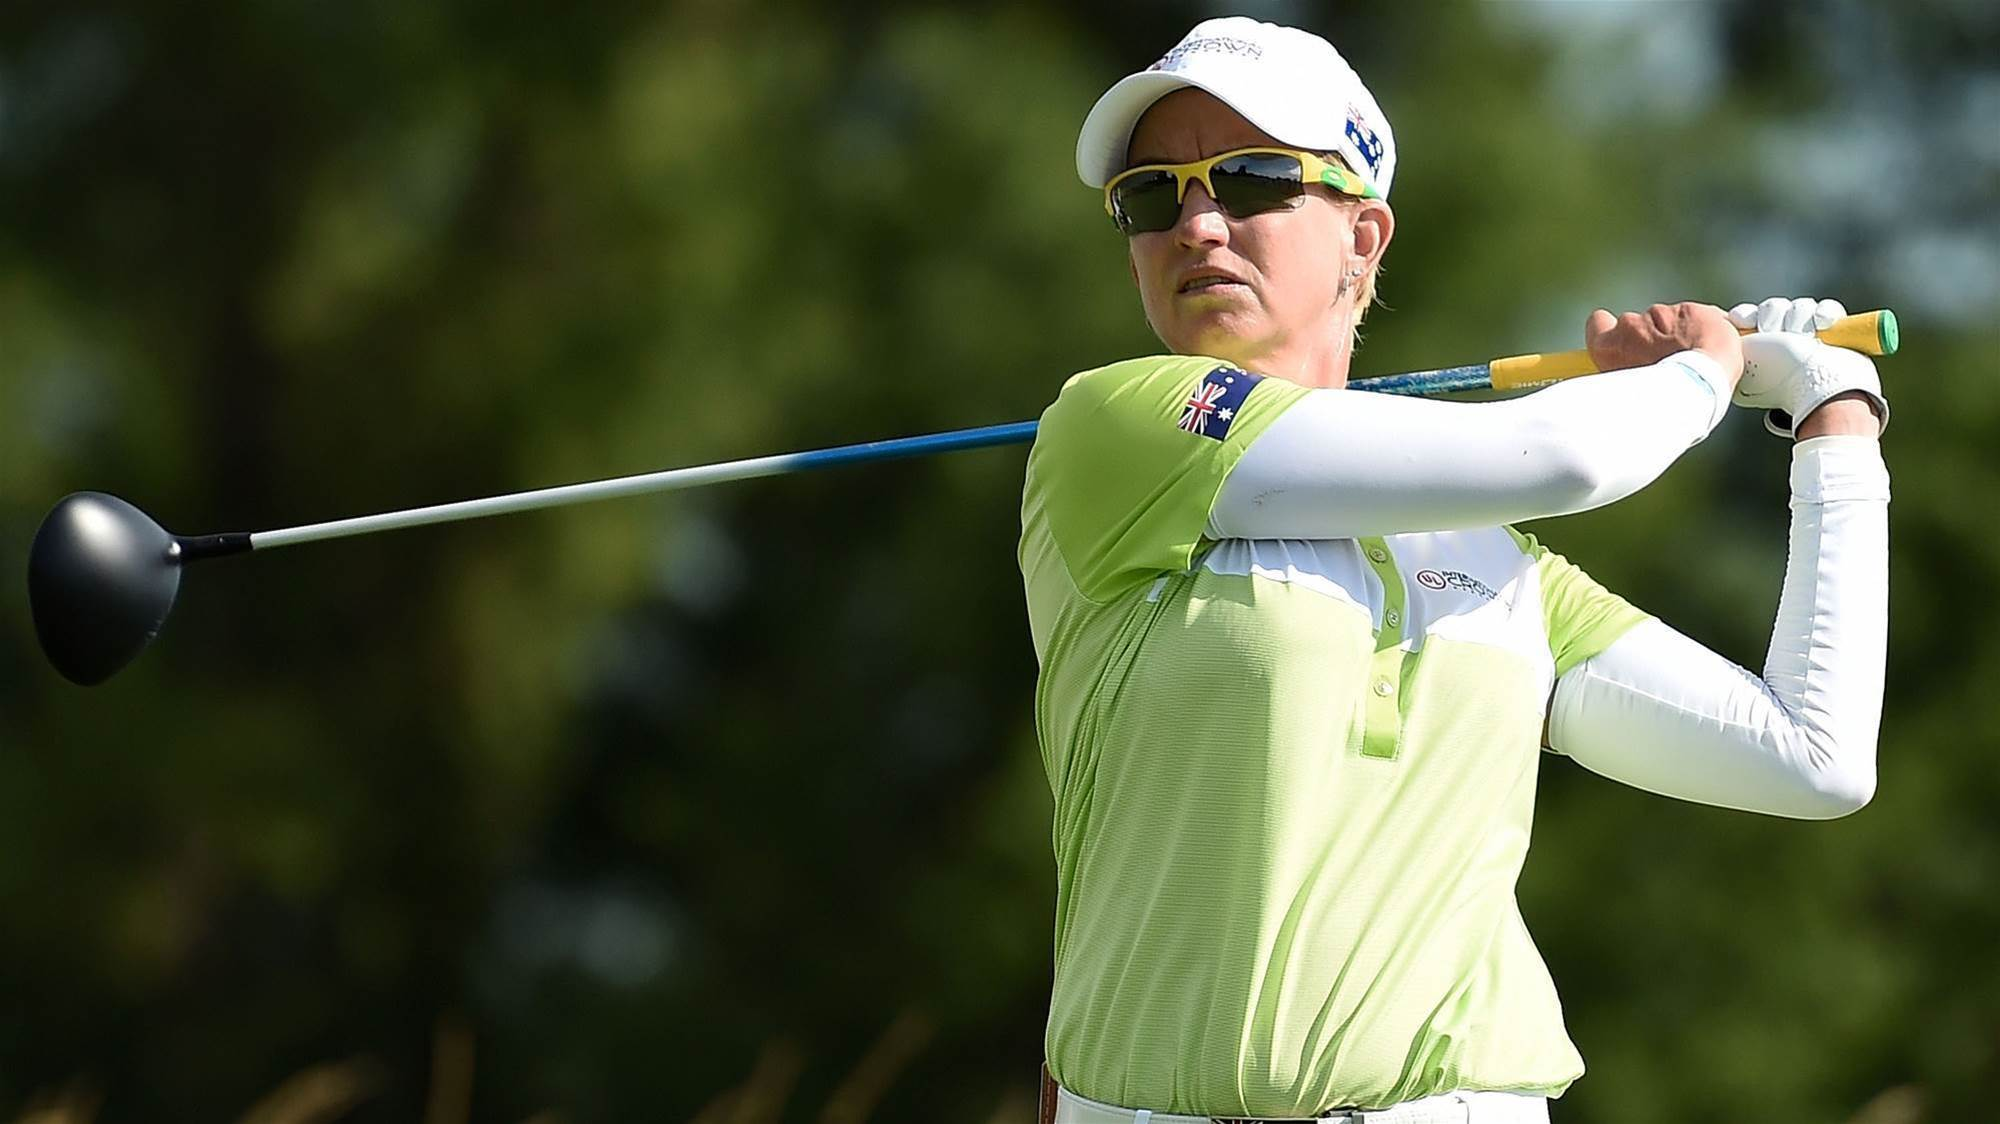 Karrie Webb returns to Royal Adelaide